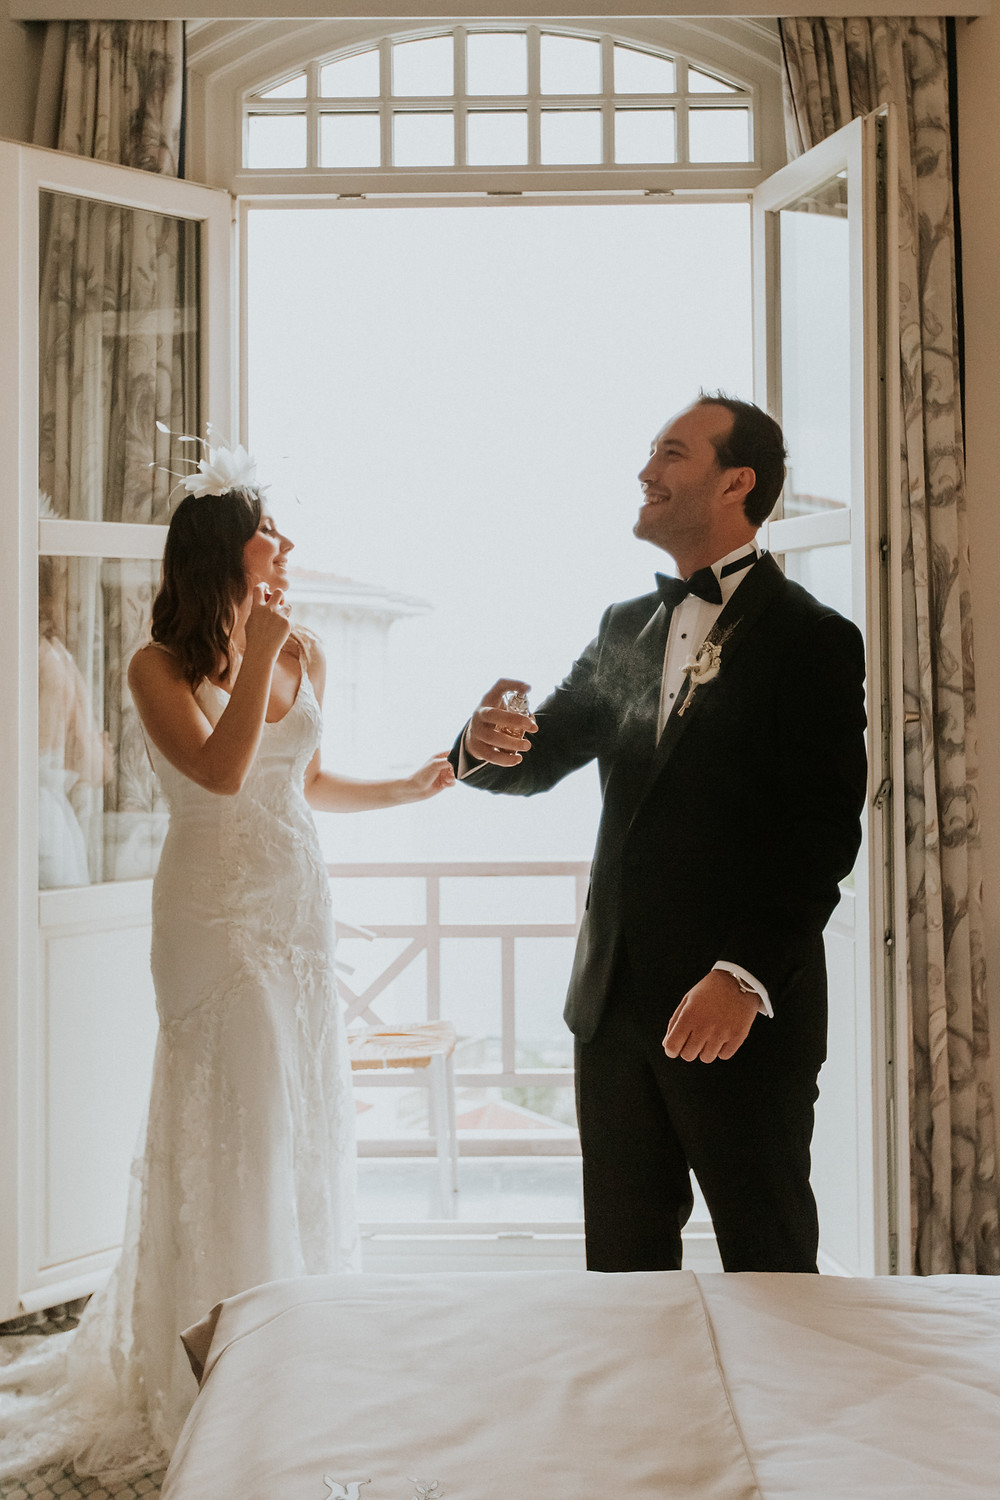 Büyükada Splendid Palace hotel wedding photographer